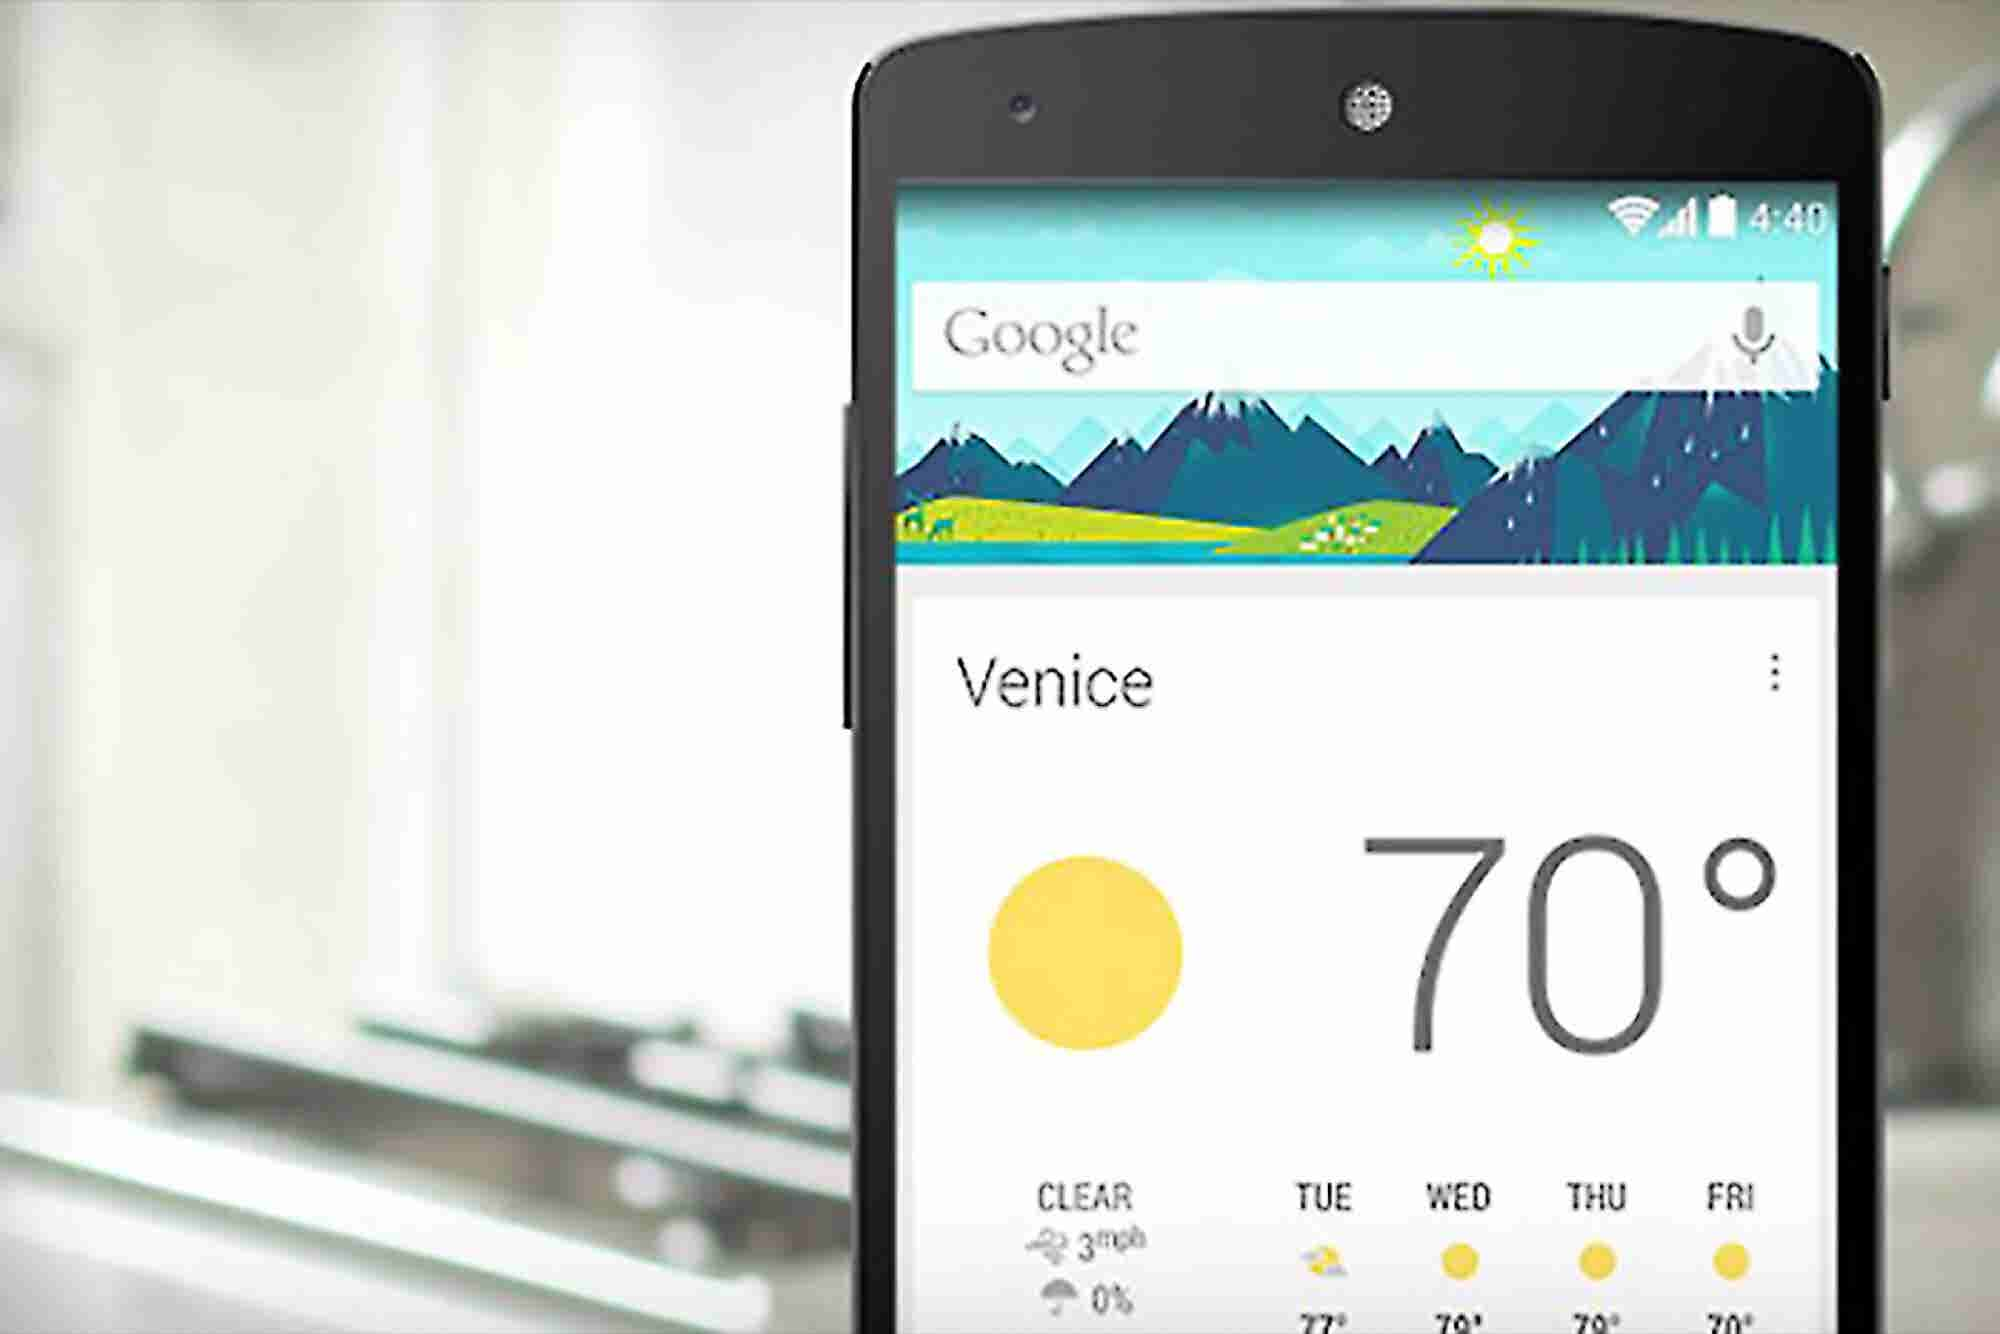 A Look at Google Now, the Predictive Personal Assistant for Android and iOS